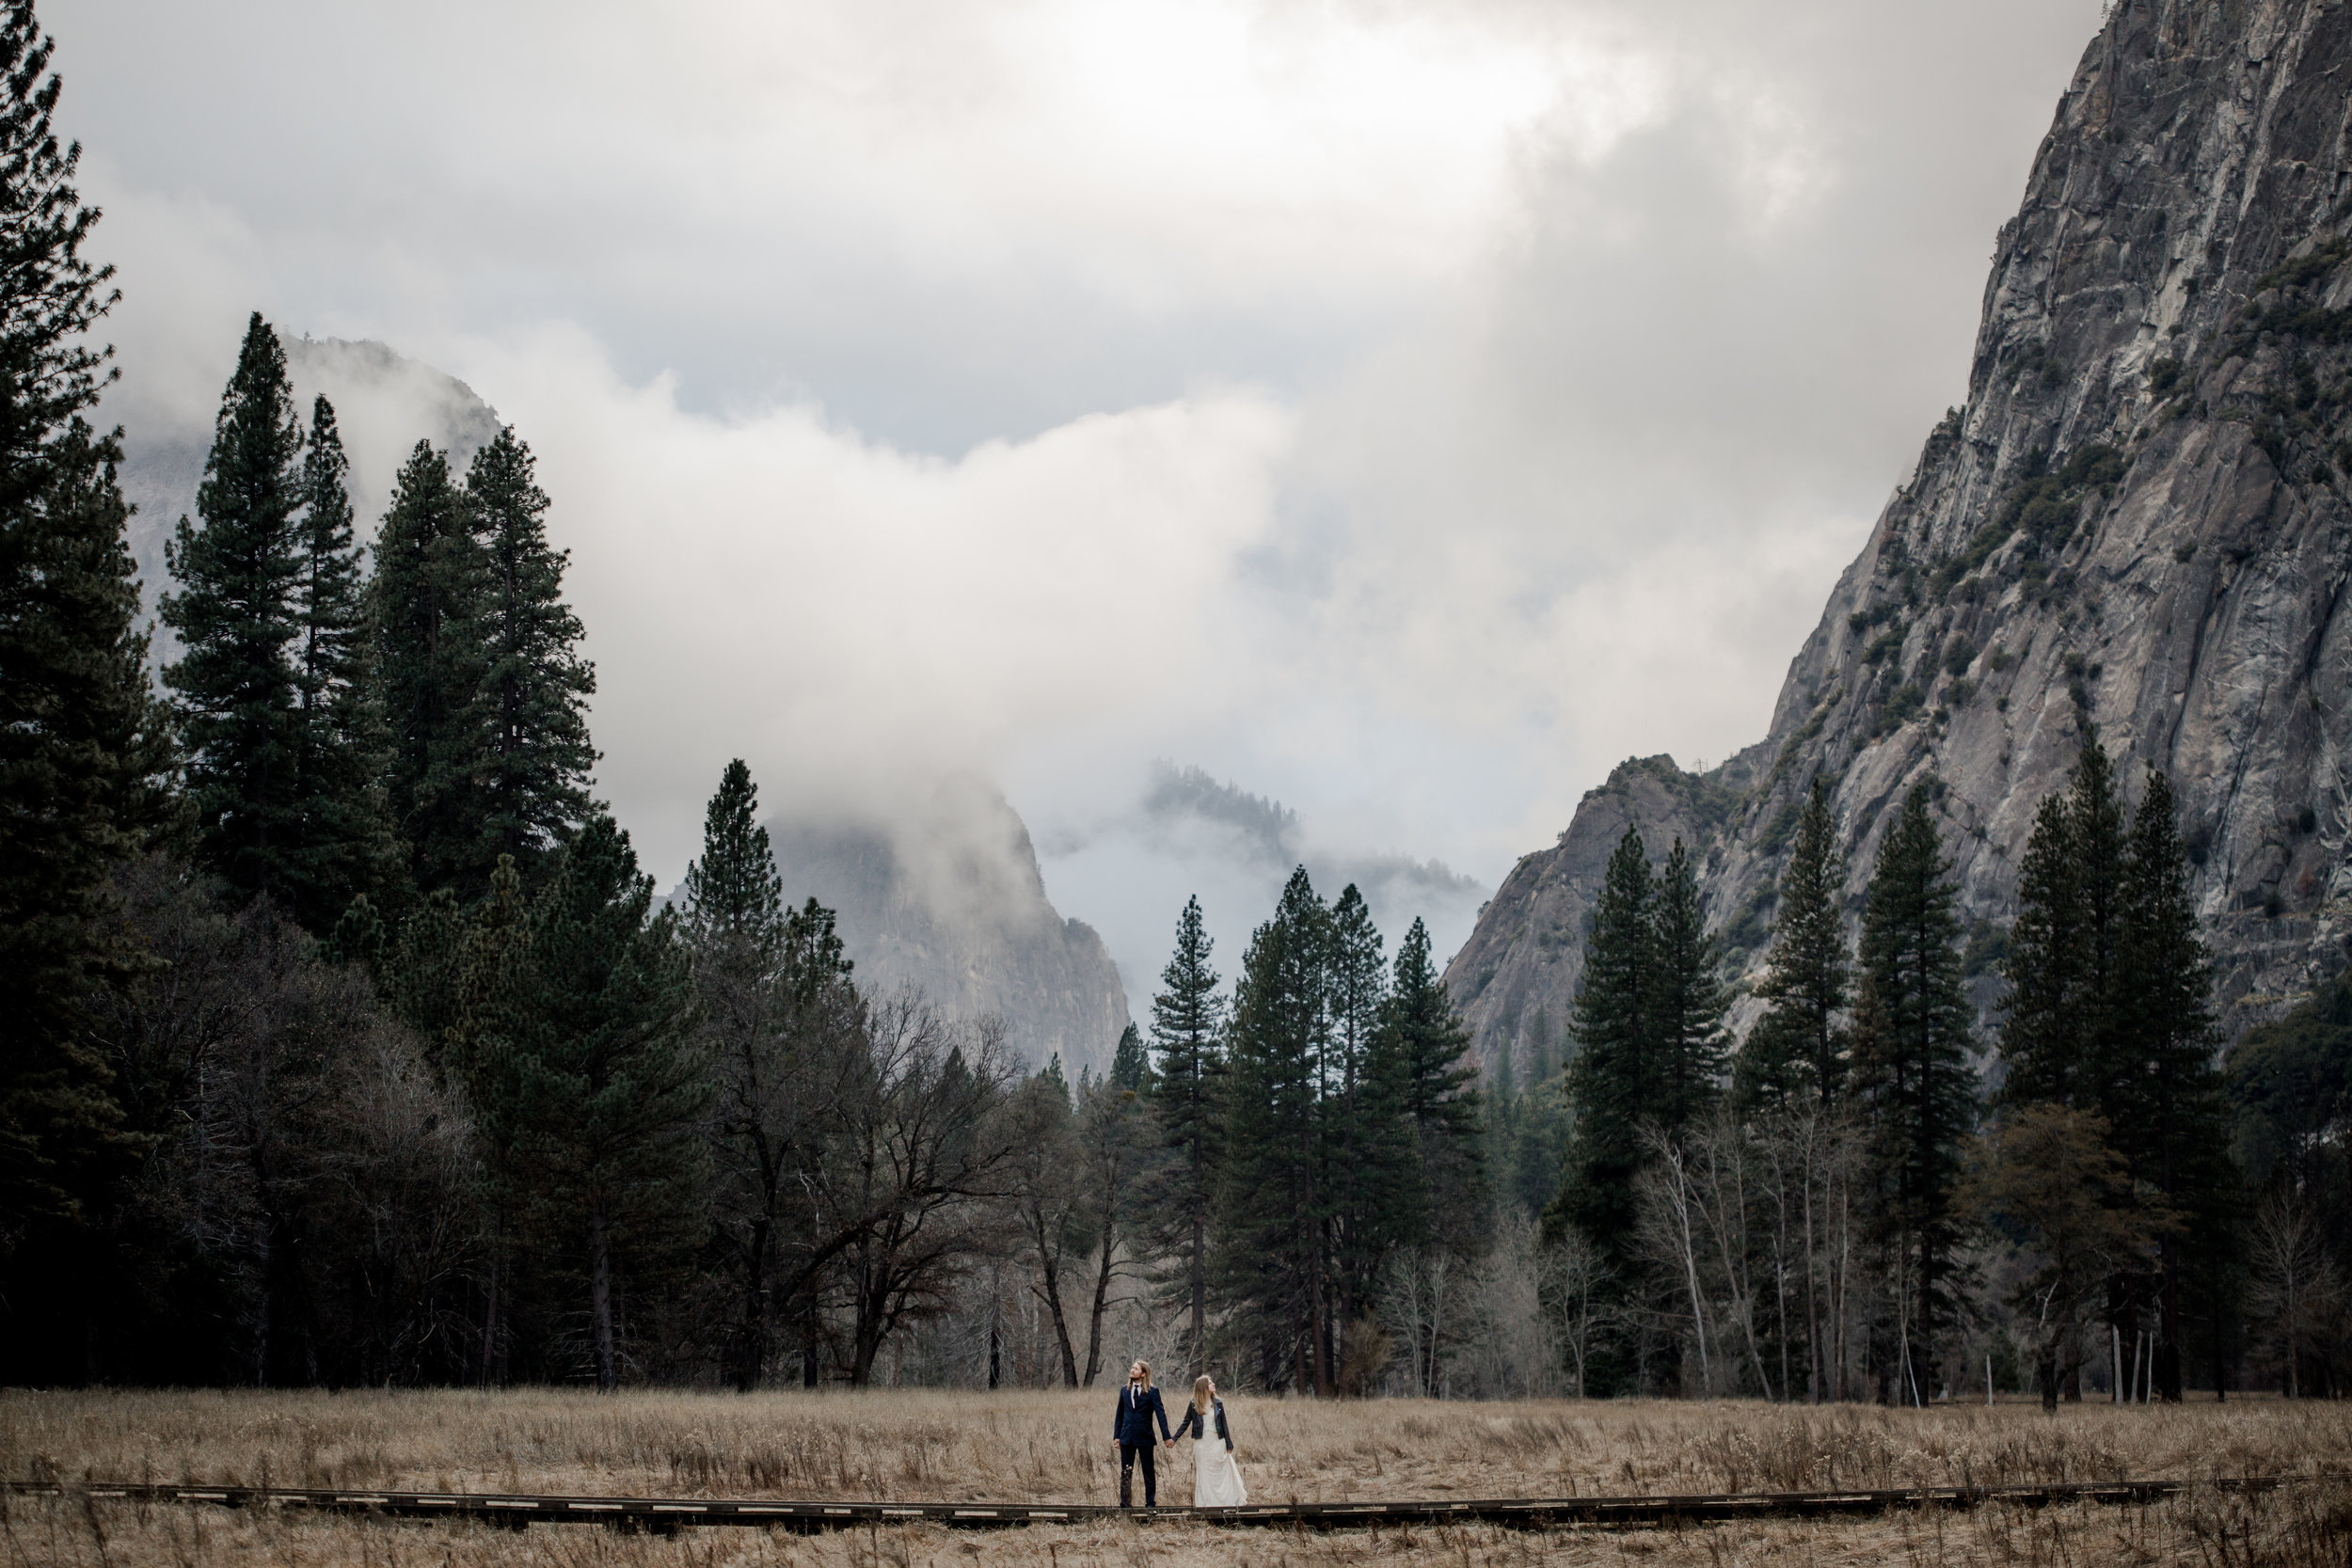 nicole-daacke-photography-yousemite-national-park-elopement-photographer-winter-cloud-moody-elope-inspiration-yosemite-valley-tunnel-view-winter-cloud-fog-weather-wedding-photos-90.jpg